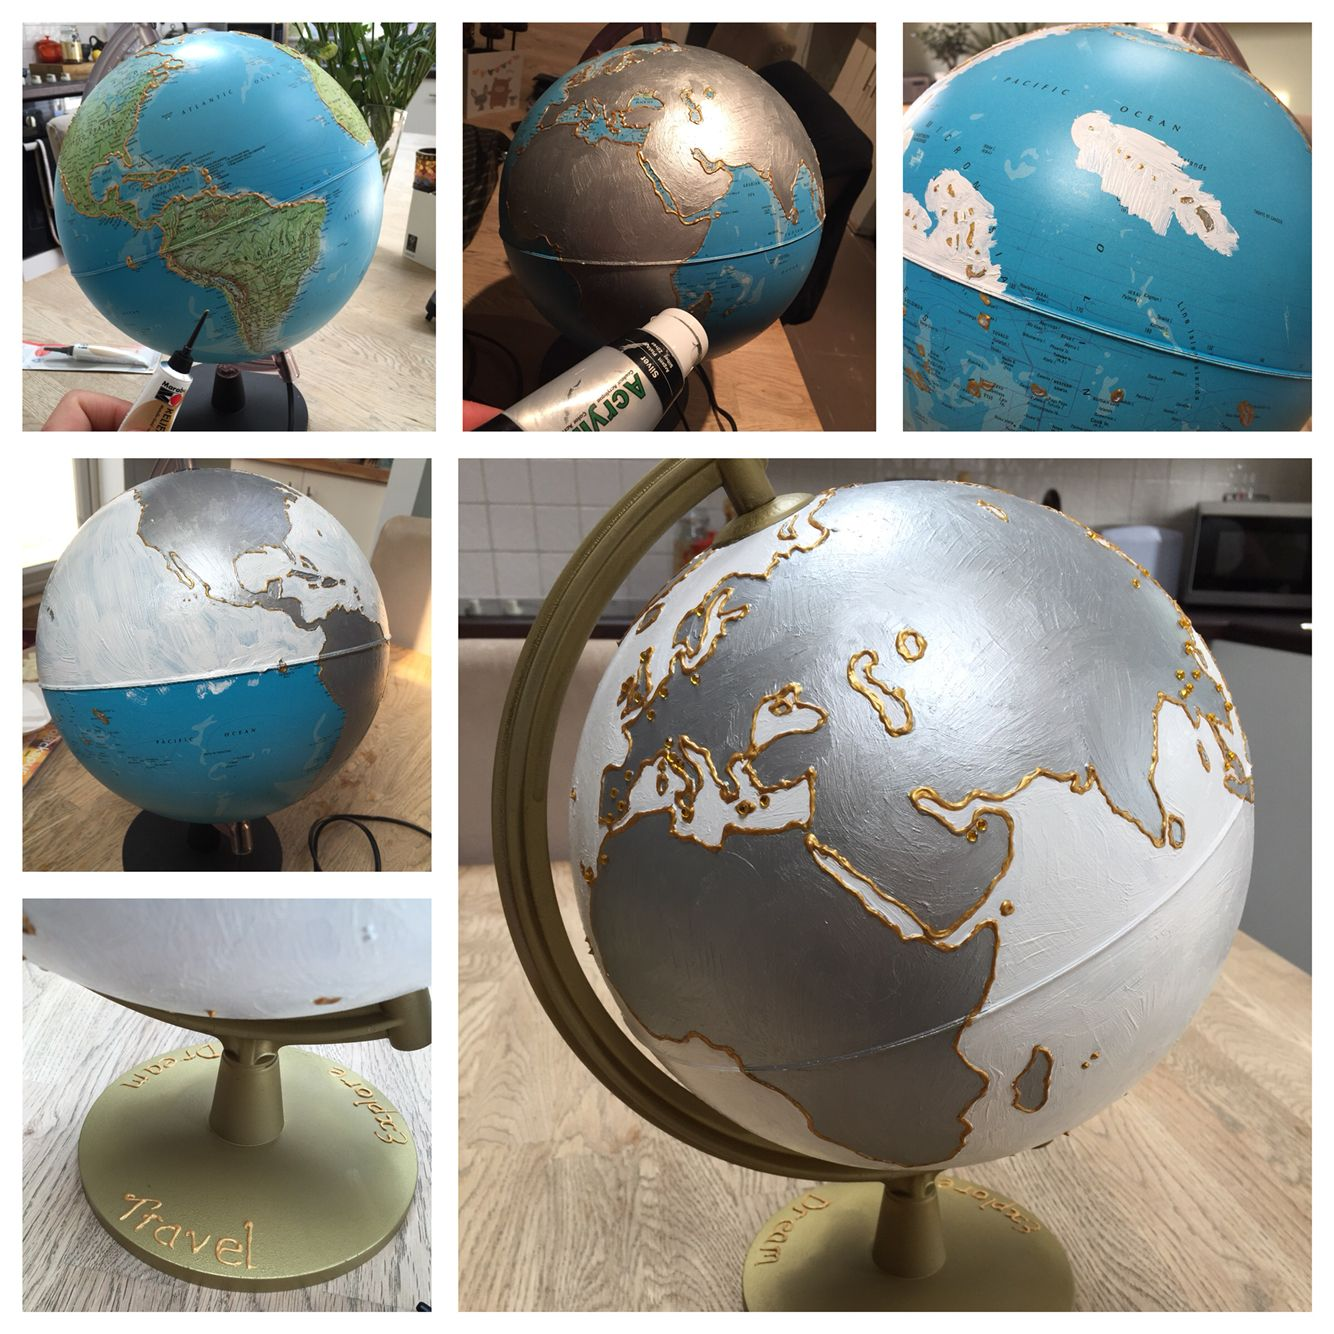 Globe gift I Hand painted using acrylics, gold edging and diamanté for places my friend had visited.